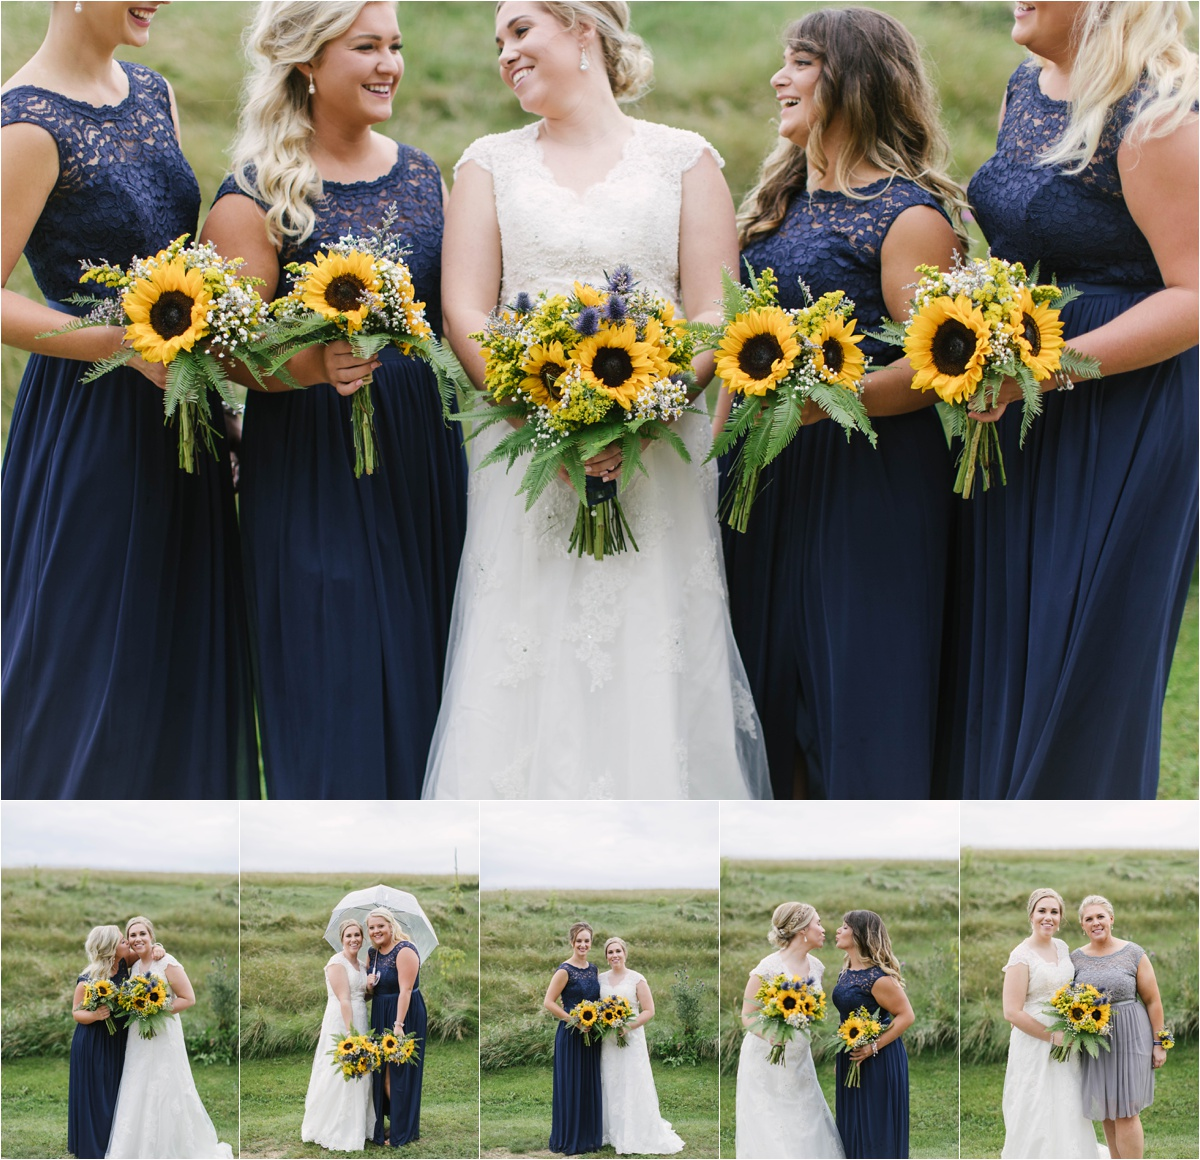 Stephanie Lynn Photography- Biessel Wedding, country charm, golf course wedding- Canon Falls, MN_0040.jpg